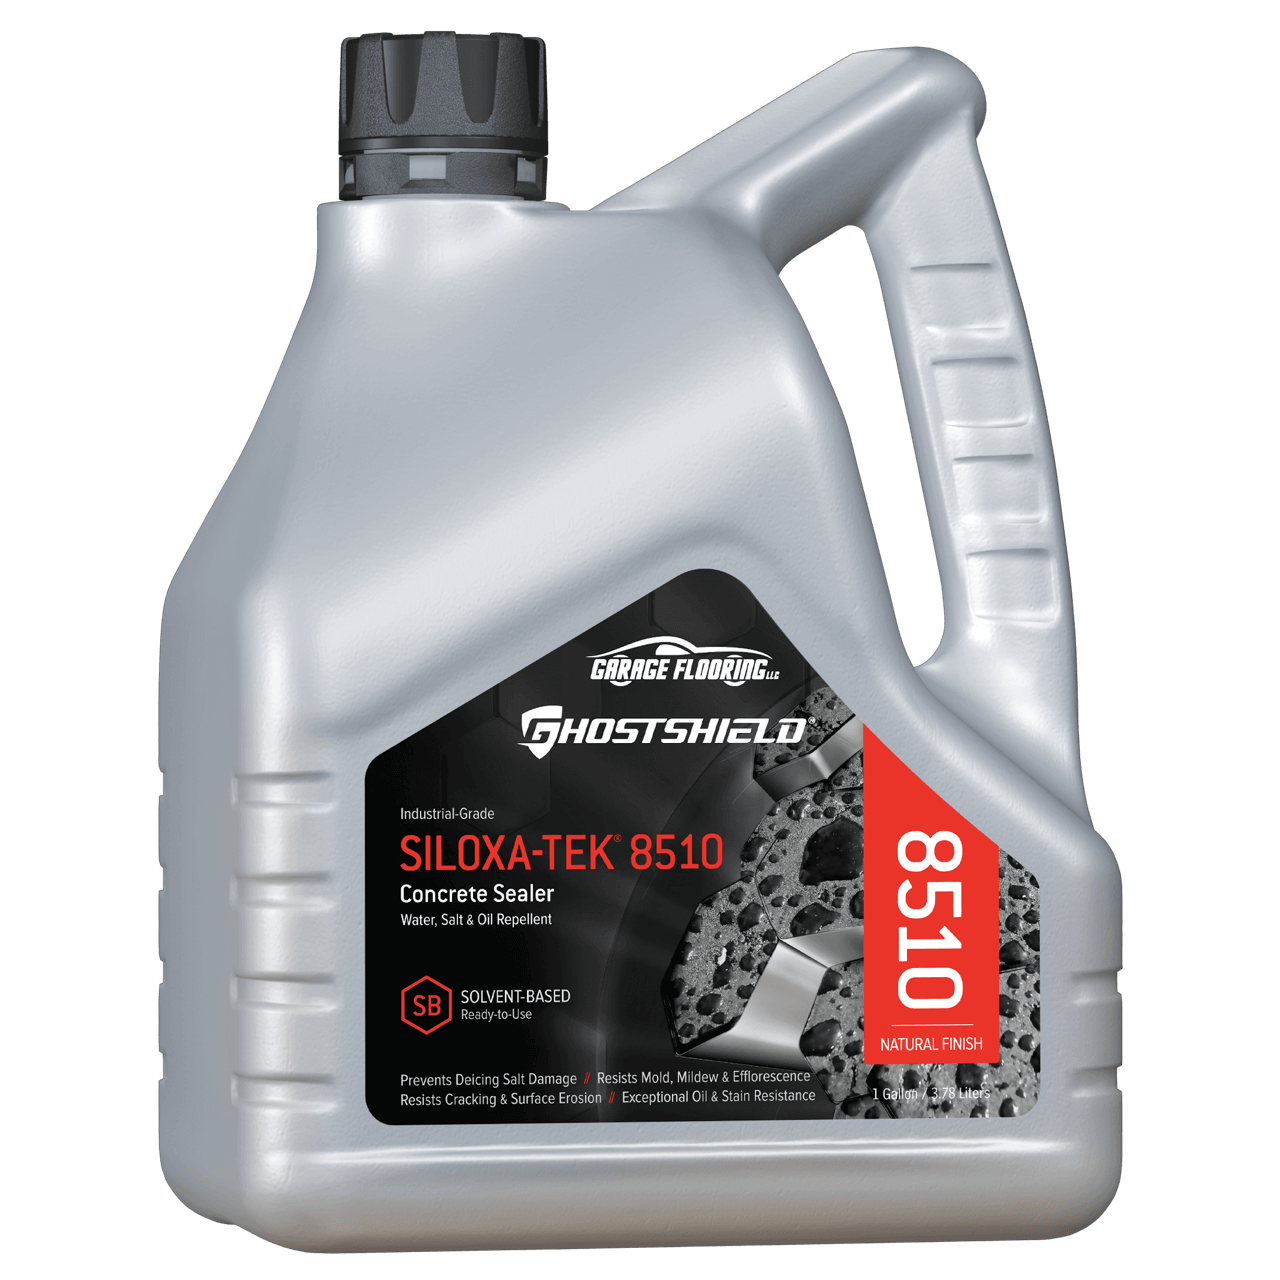 Ghostshield Siloxa Tek 8505 And 8510 Oil Repellent